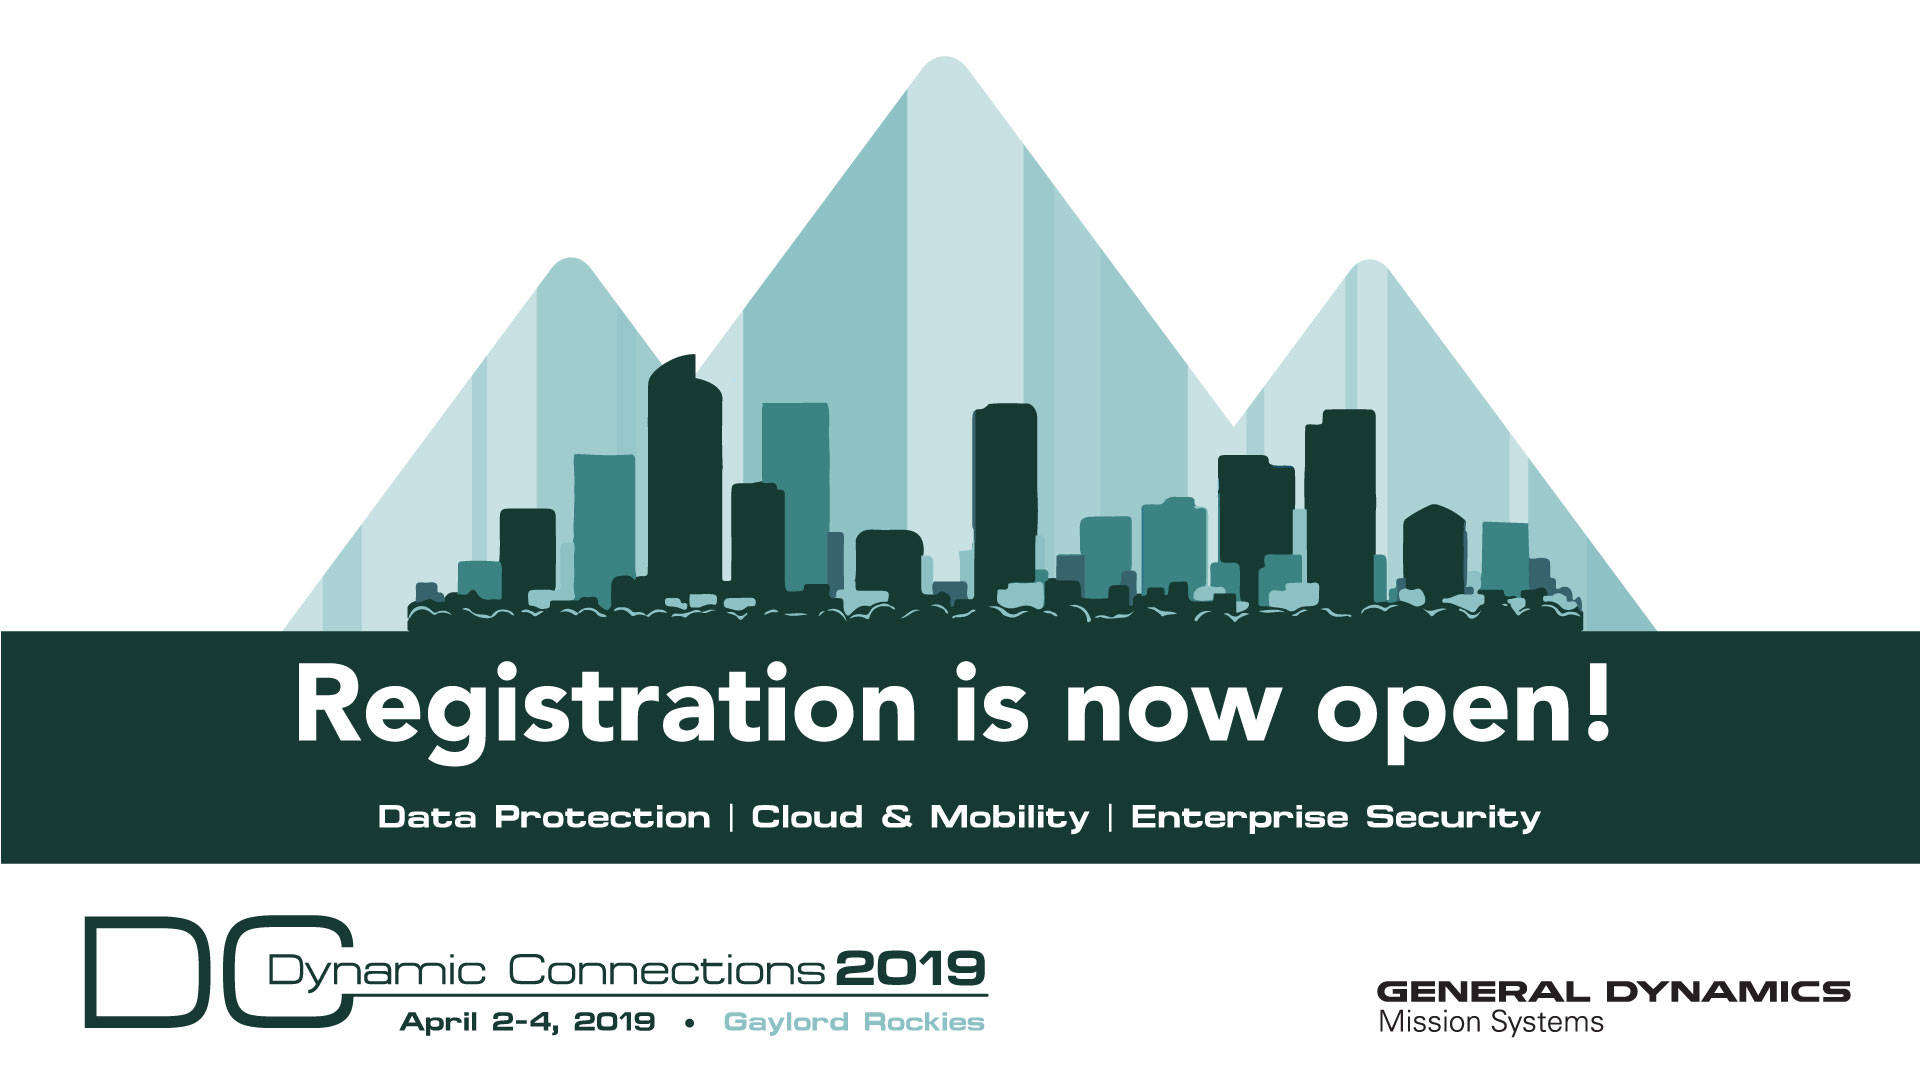 Dynamic Connections 2019 Registration is Now Open